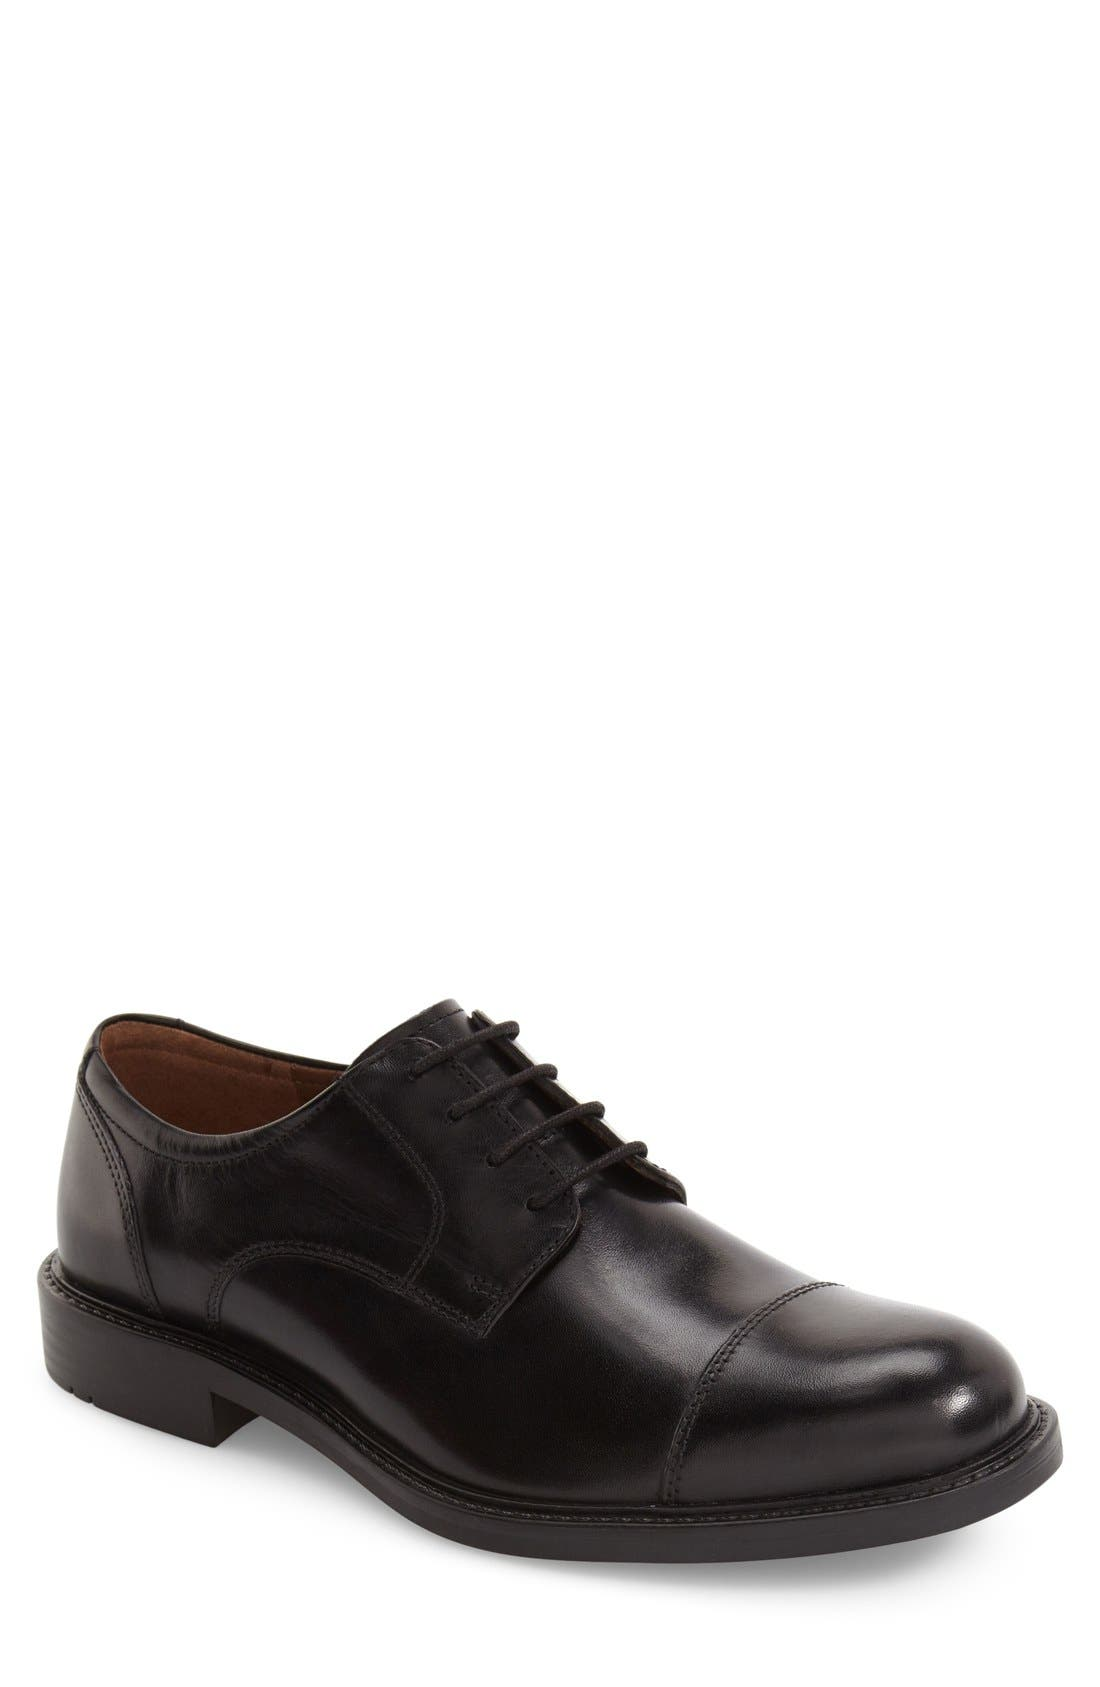 Tabor Cap Toe Derby,                         Main,                         color, BLACK LEATHER